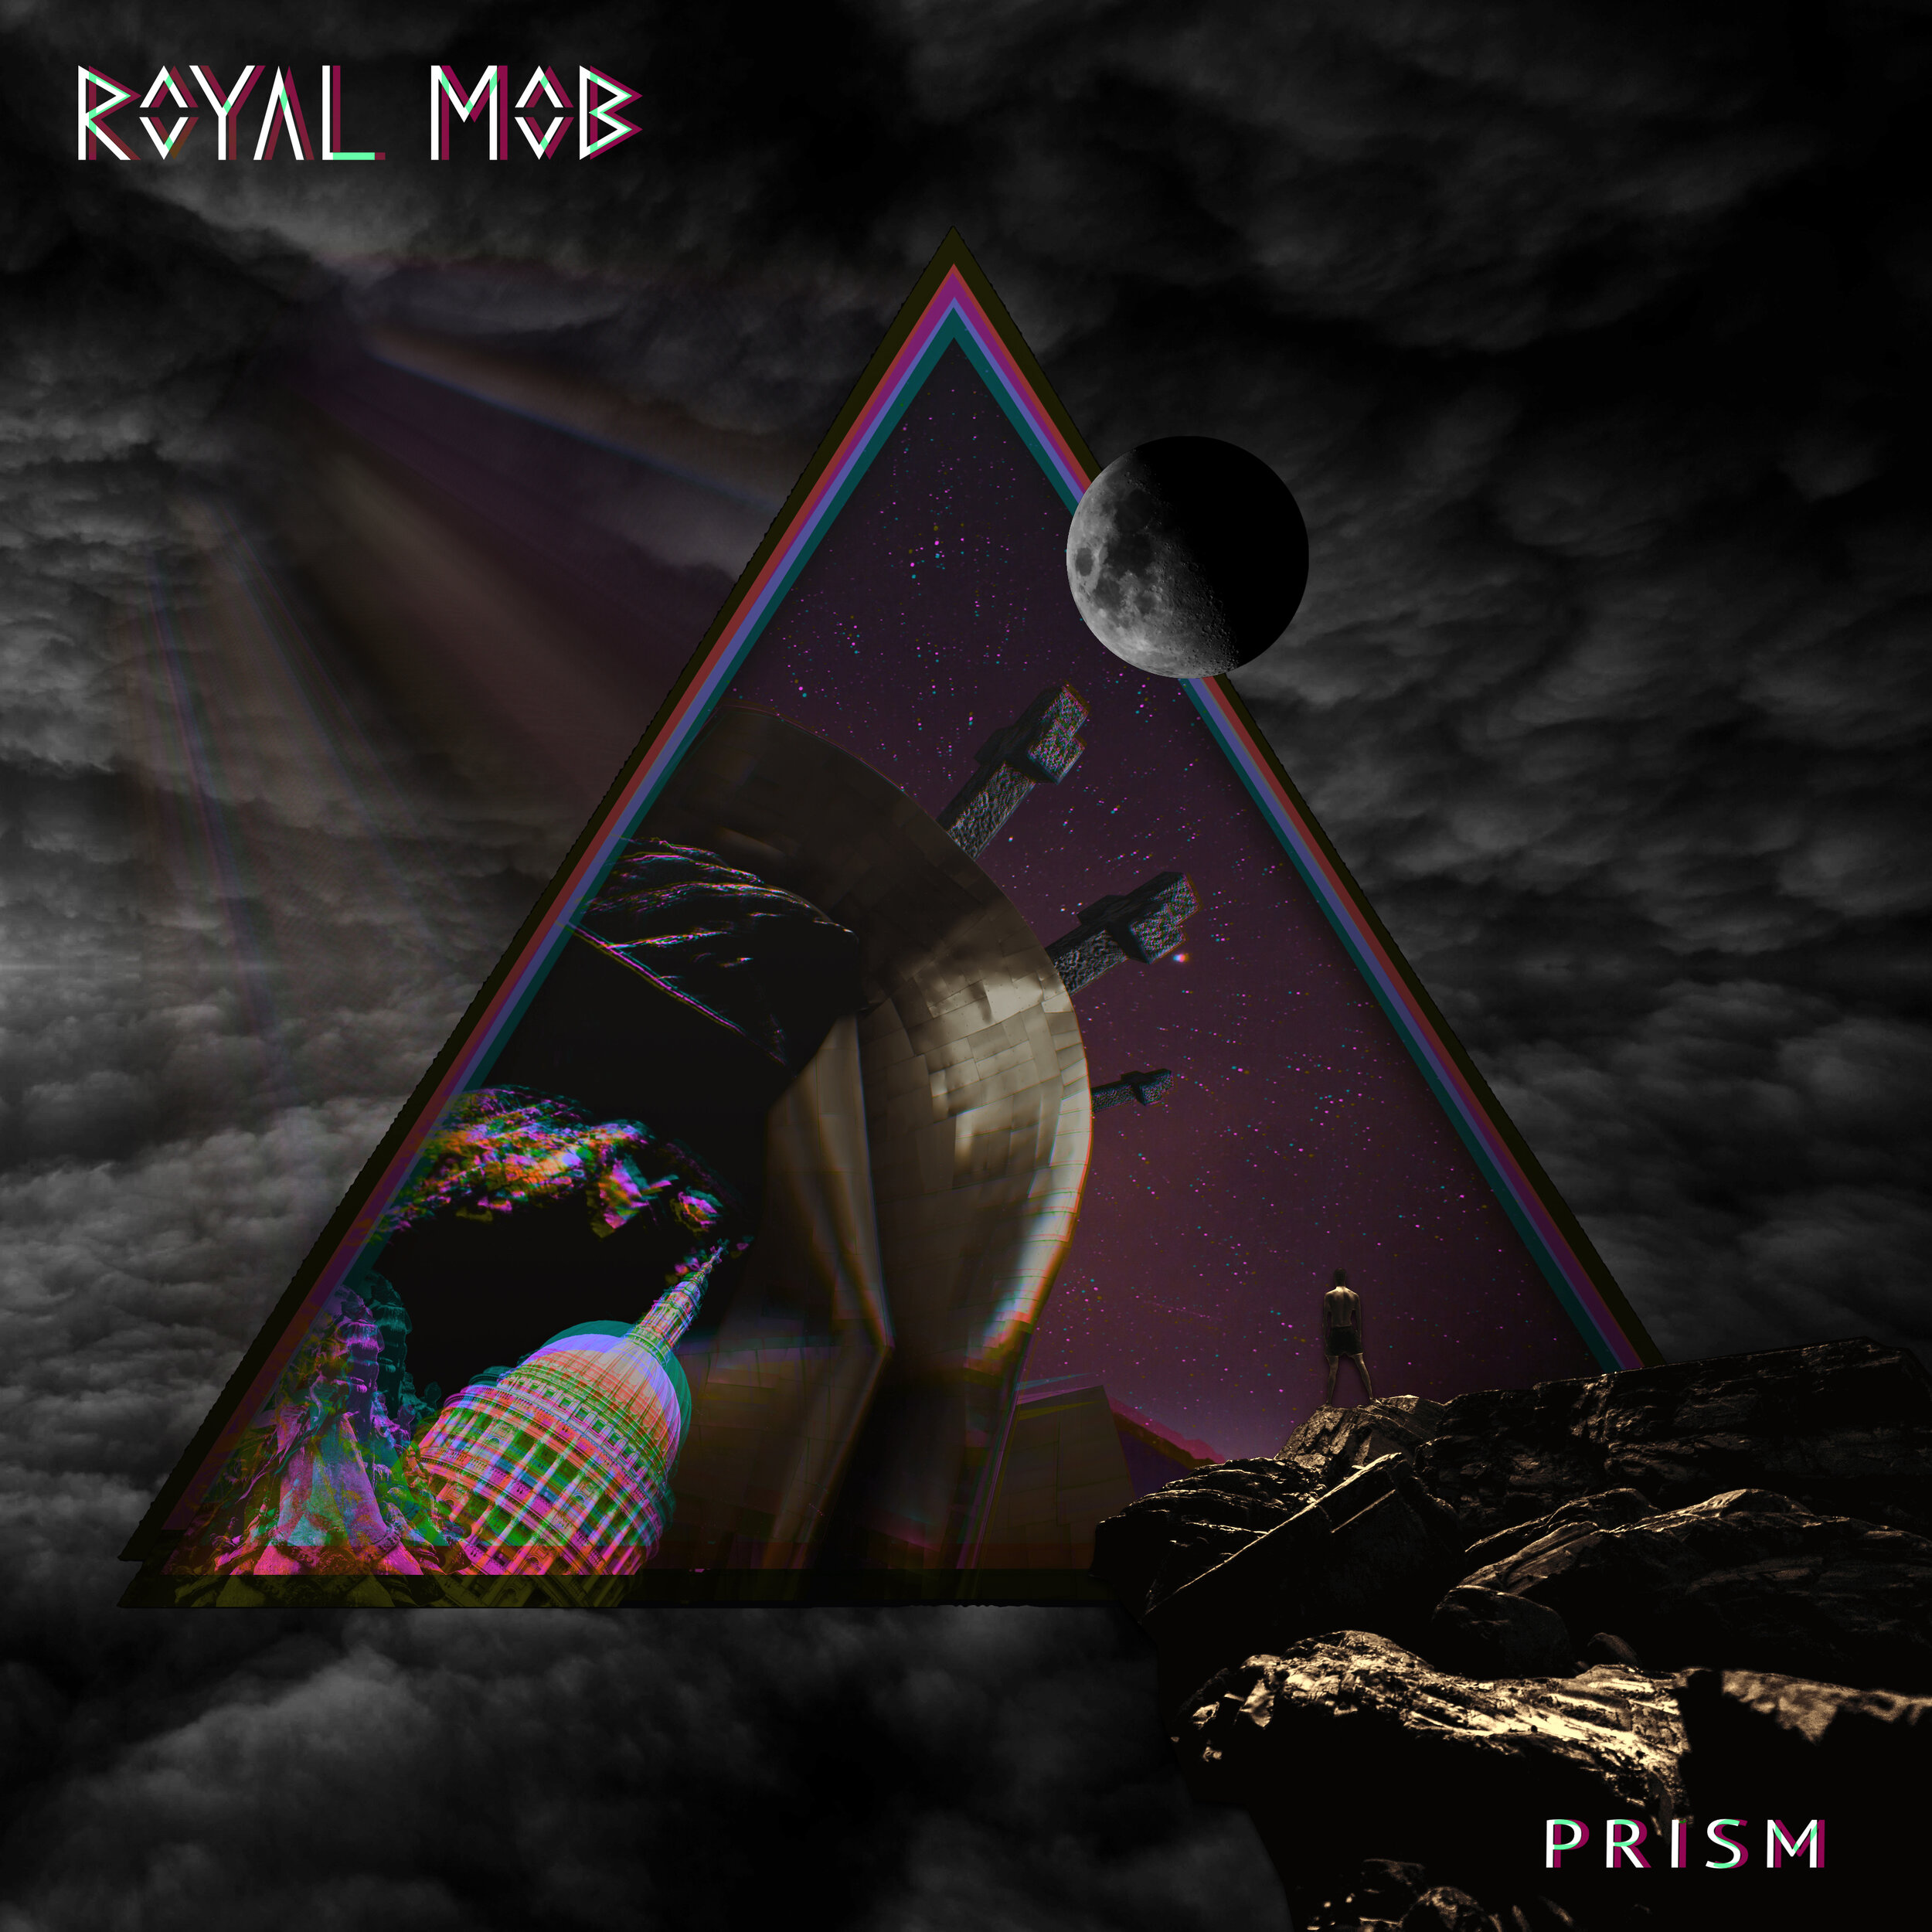 UPDATE x 04/10/2019 - Our new single - Prism is now out and available on every streaming services.